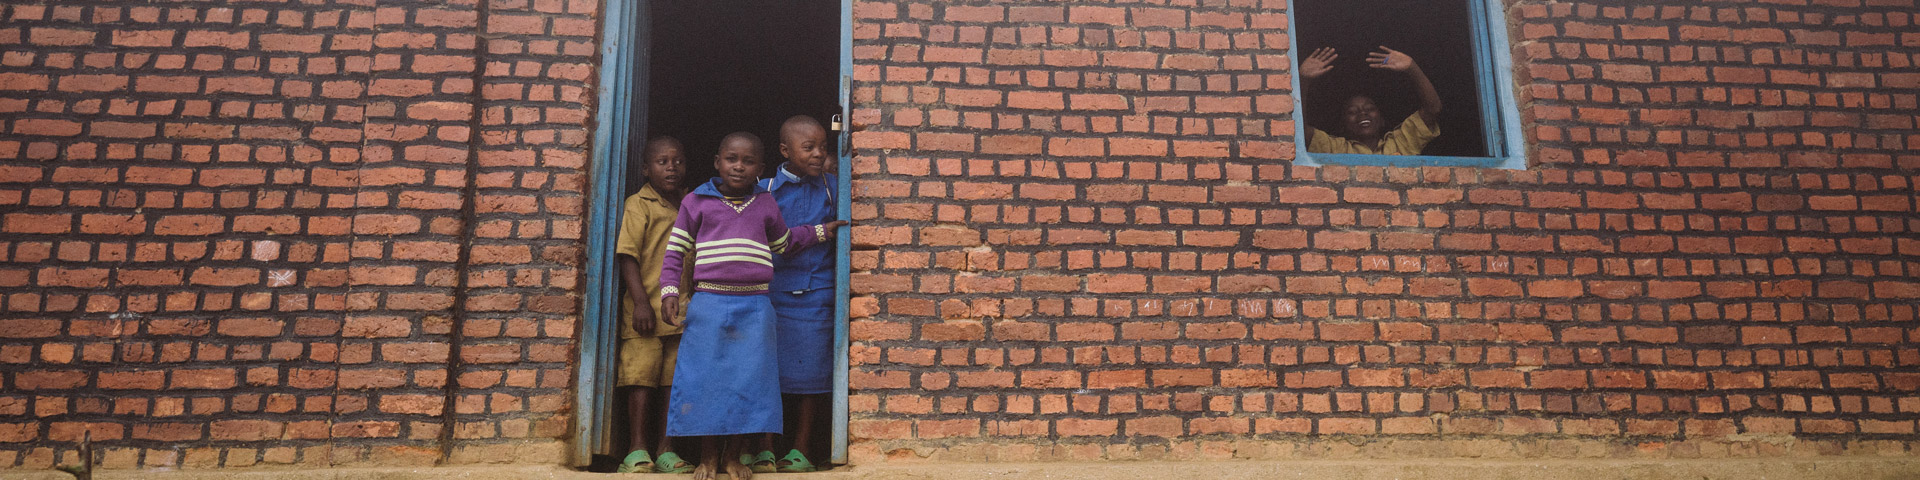 Vision 2024: For Every Child | The Wellspring Foundation for Education